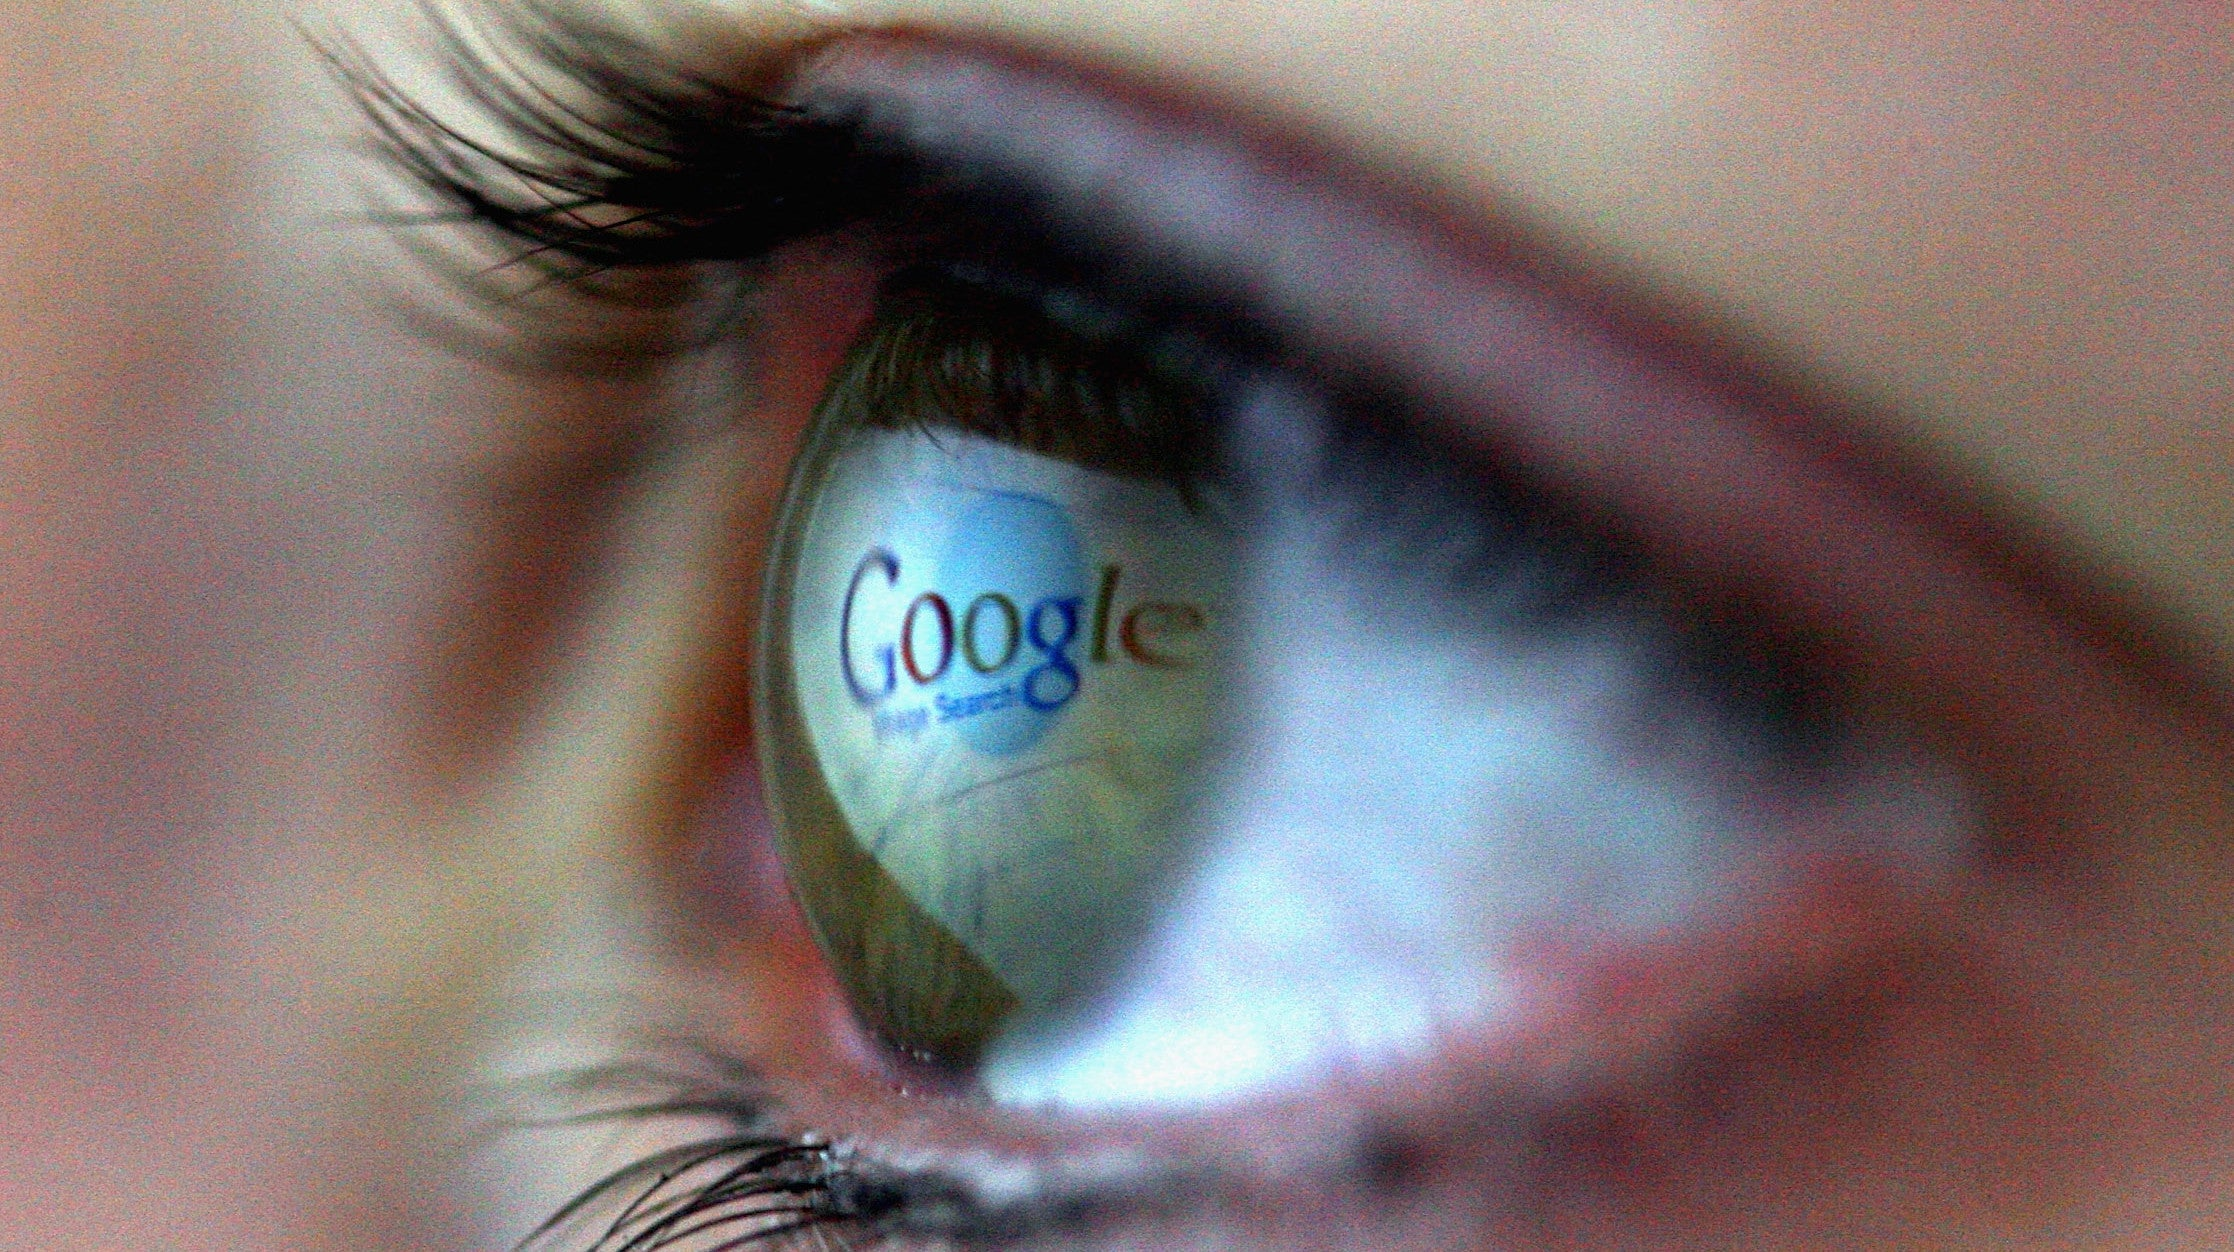 Google Gave Free Ads To A Deceptive Anti-Abortion Counseling Organisation